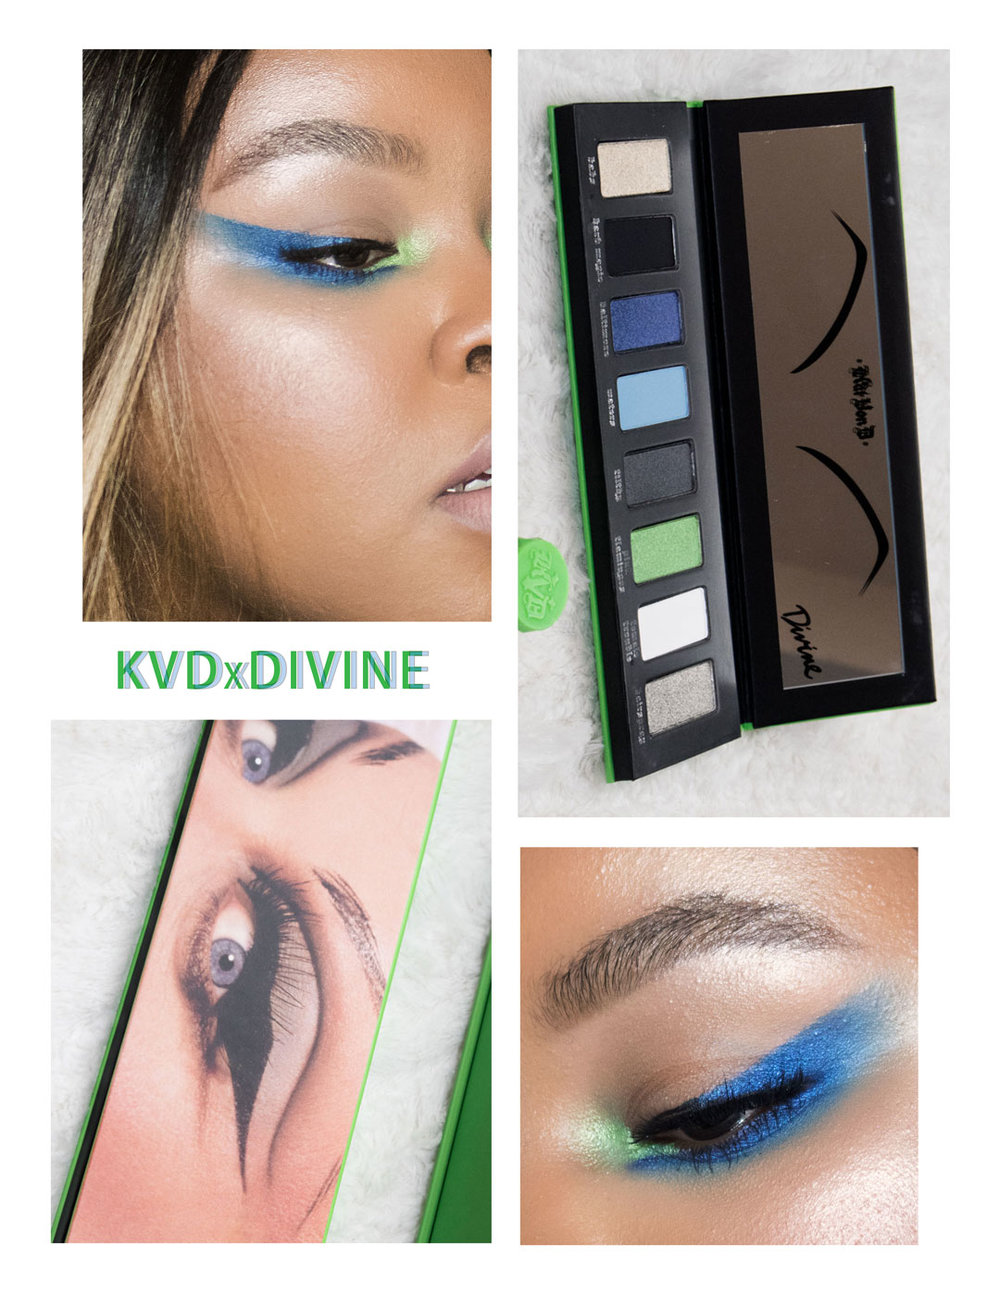 kat-von-d-divine-collection.jpg